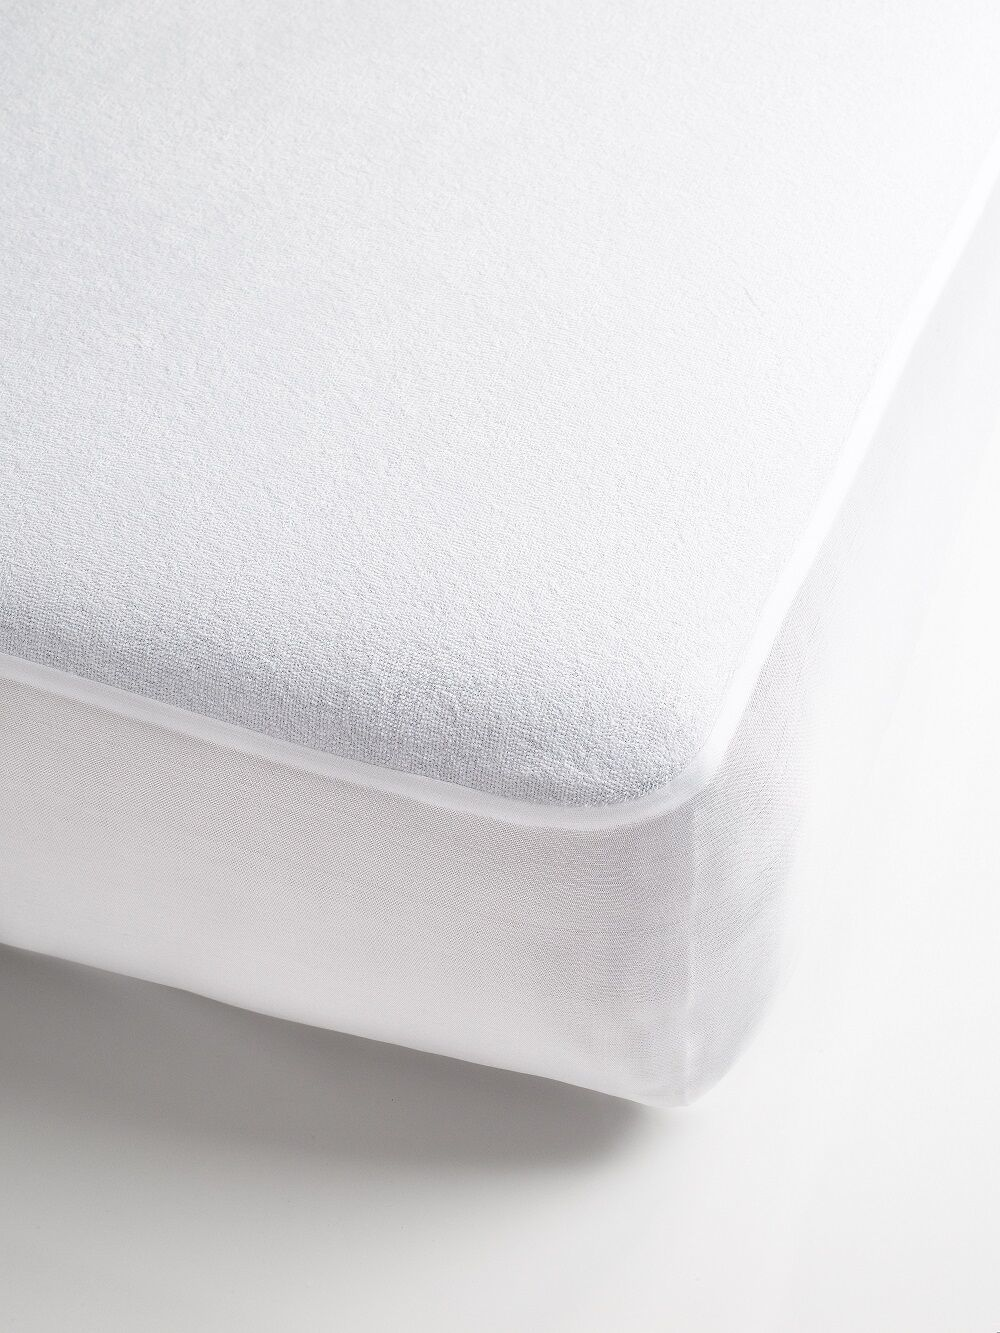 Brolly Sheets: Waterproof Towelling Mattress Protector - Queen image